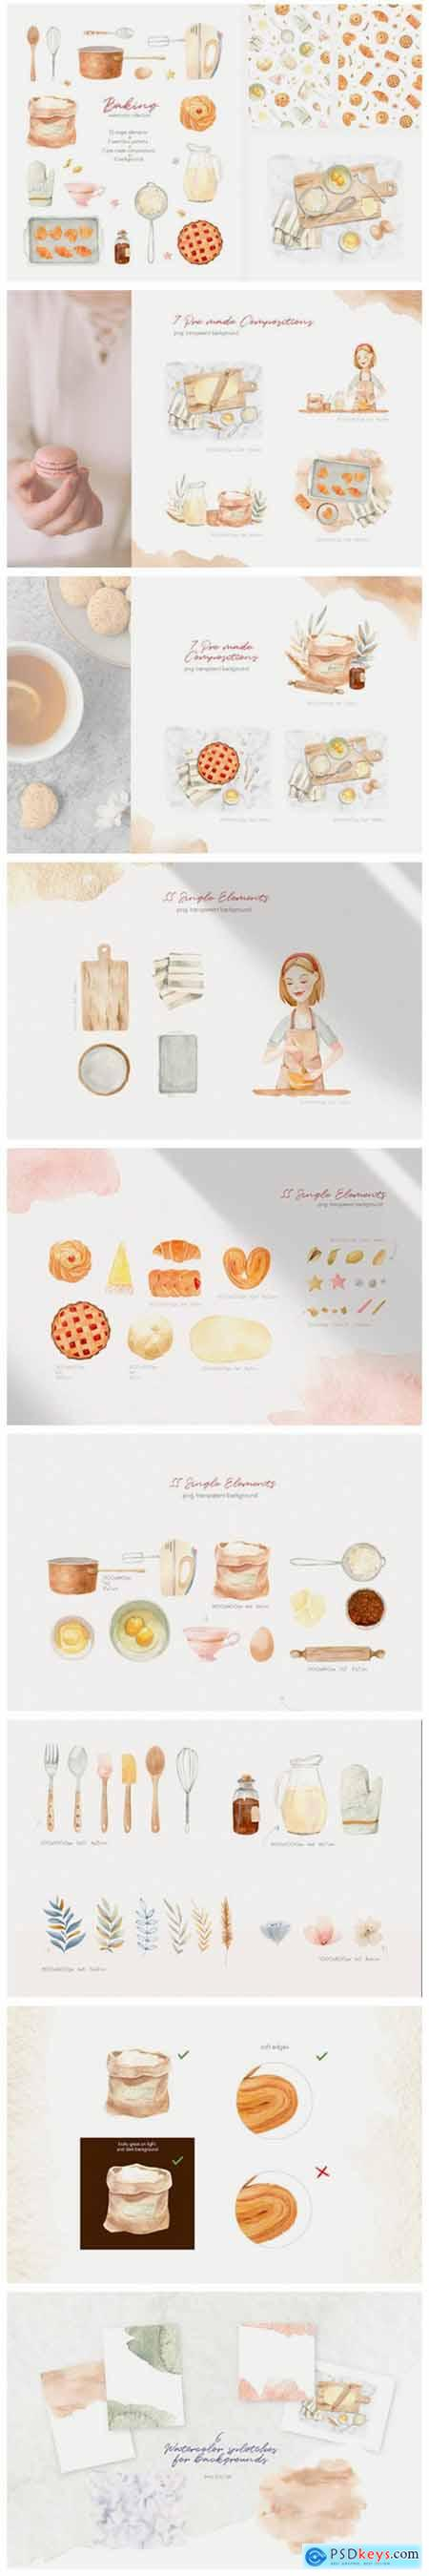 Baking at Home - Watercolor Clipart 9700981